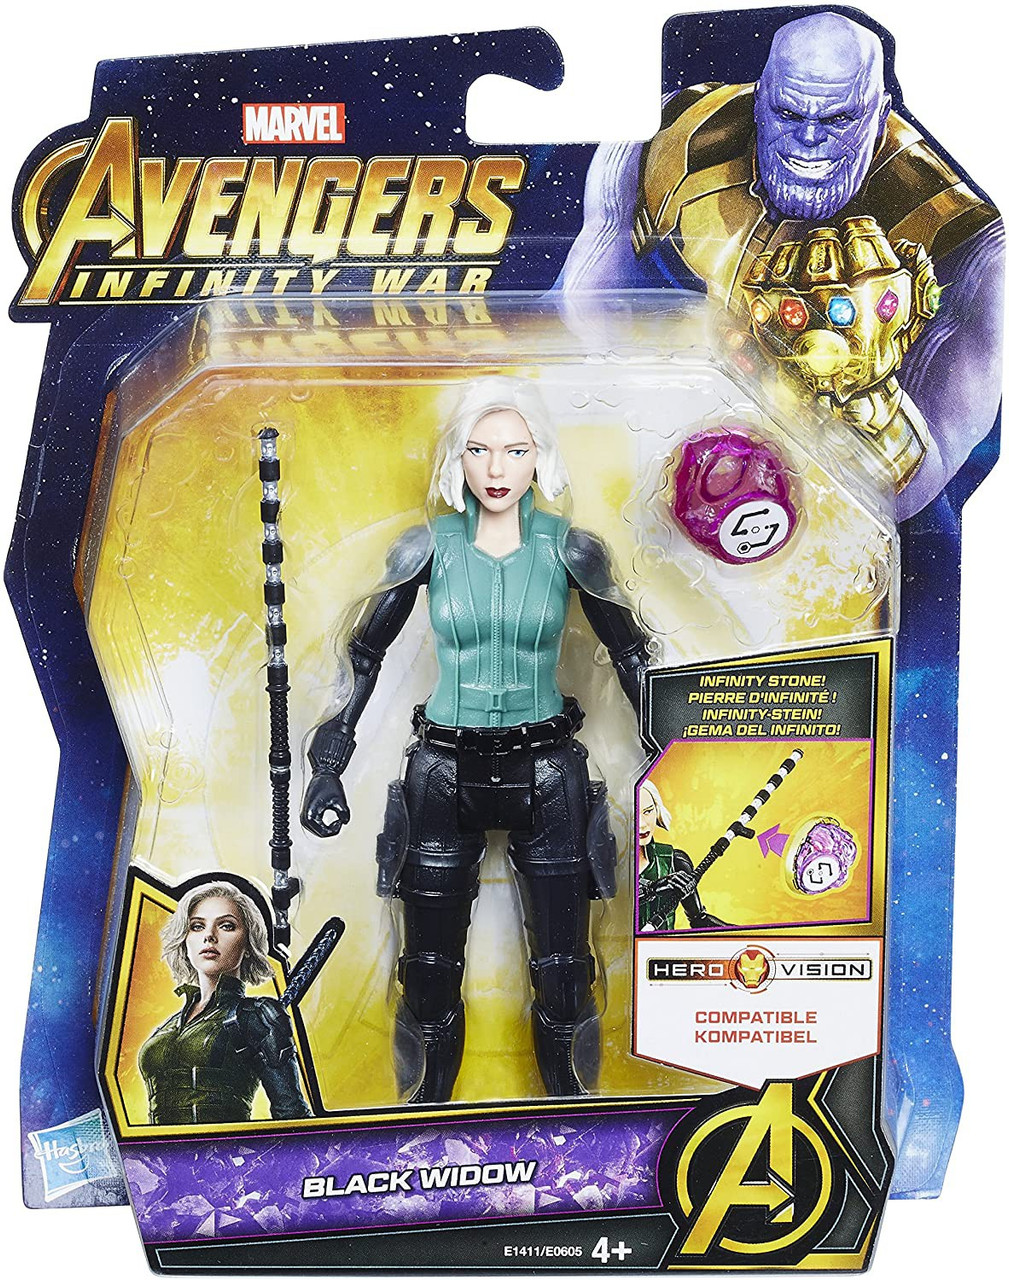 Shop here for your toy, action figure and trading card game needs. Our online store specializes in hard to find and popular kids, baby toys, figurines and collectibles.